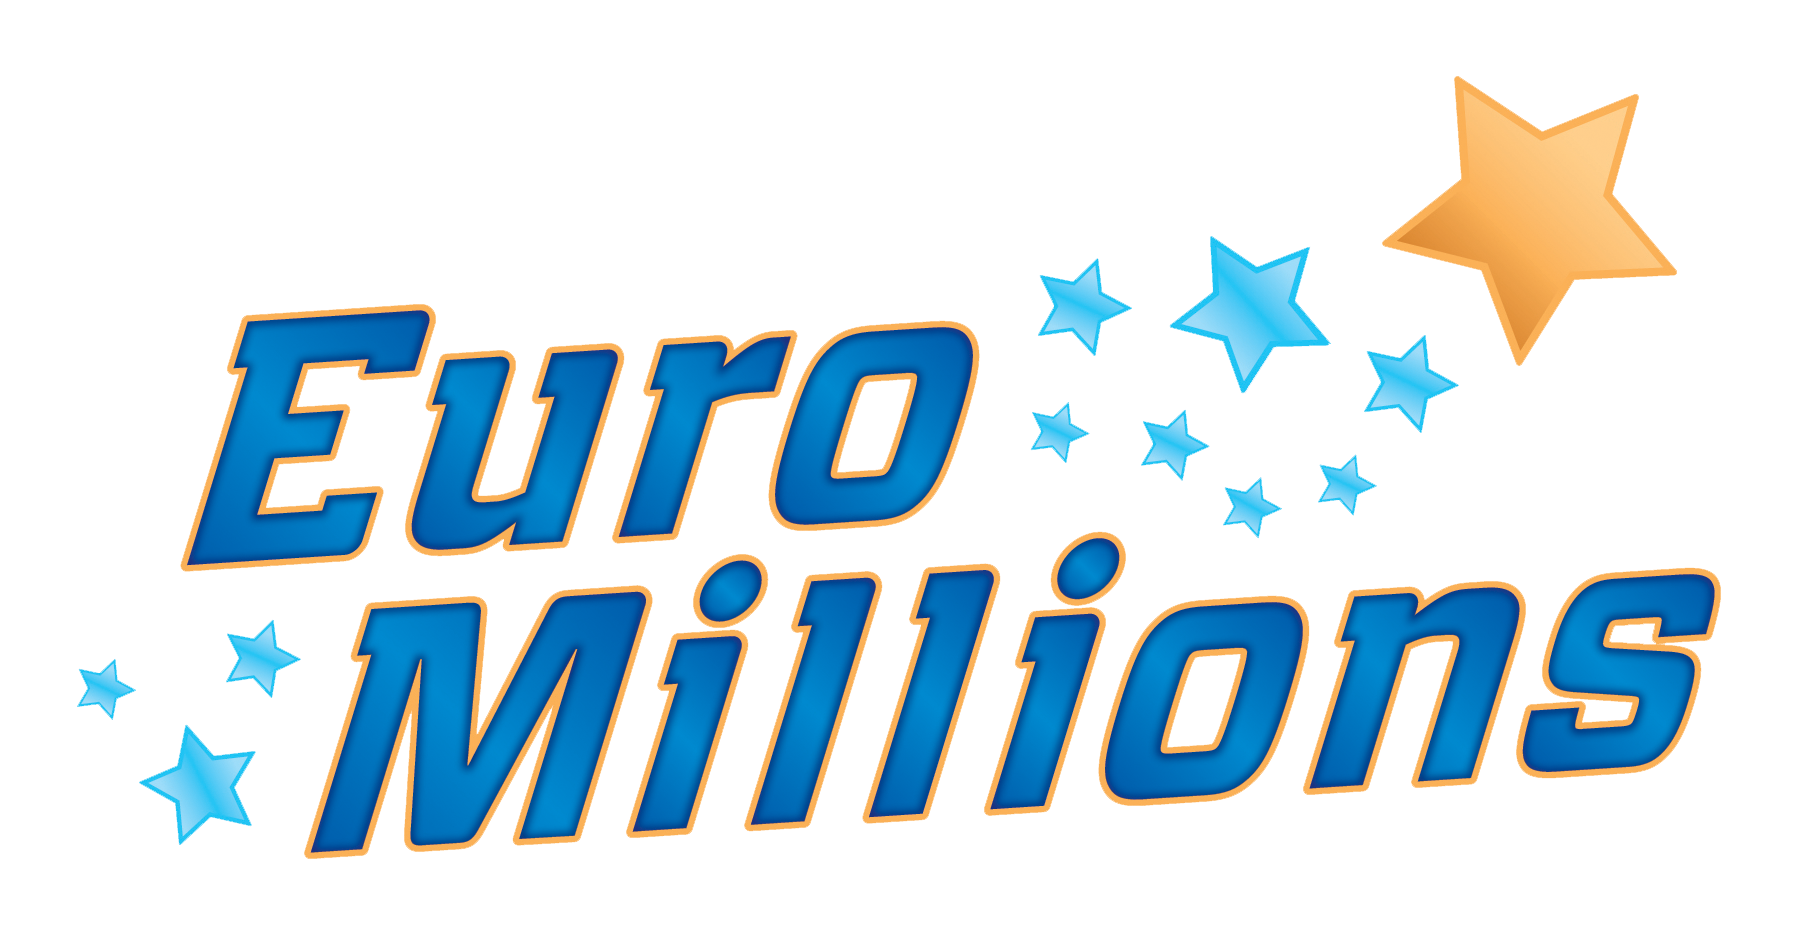 euromillions.png